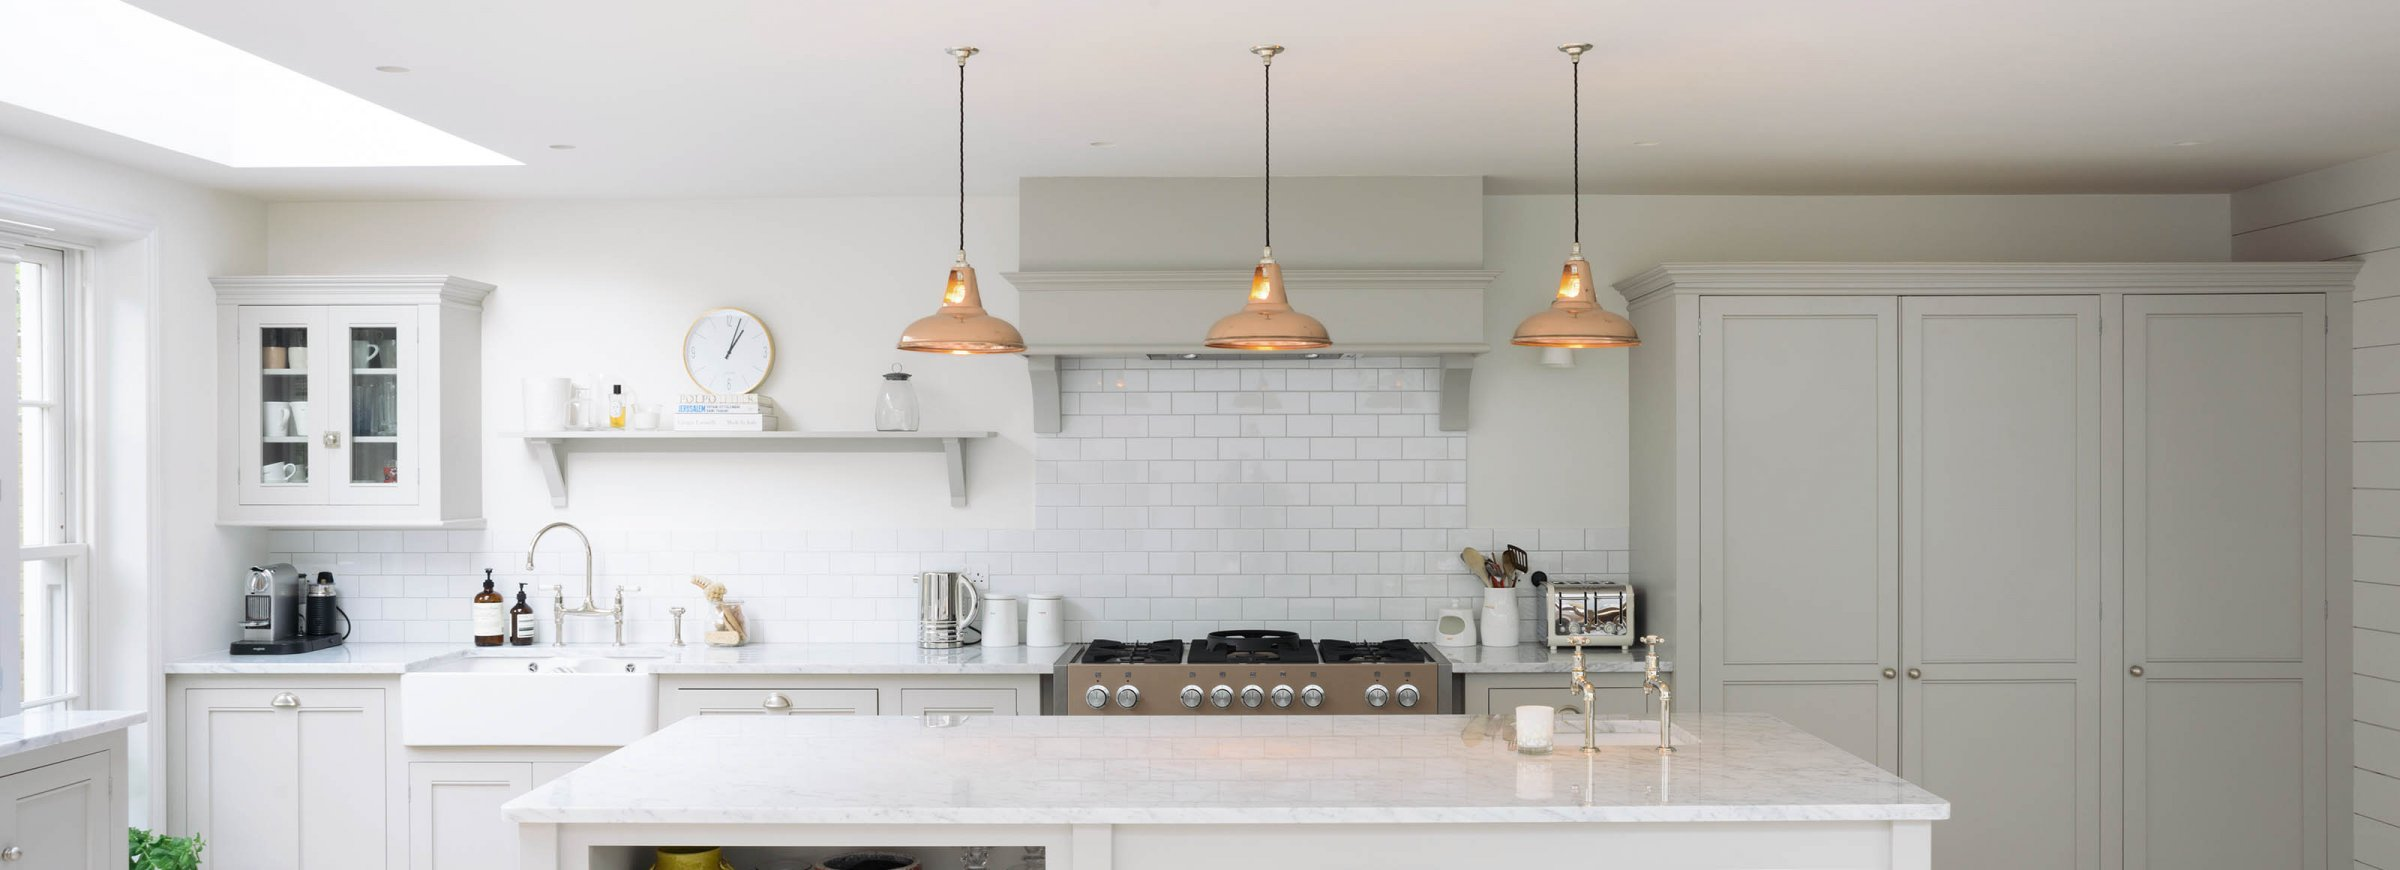 deVOL Kitchens Shaker Kitchens Classic Bespoke Kitchens Air